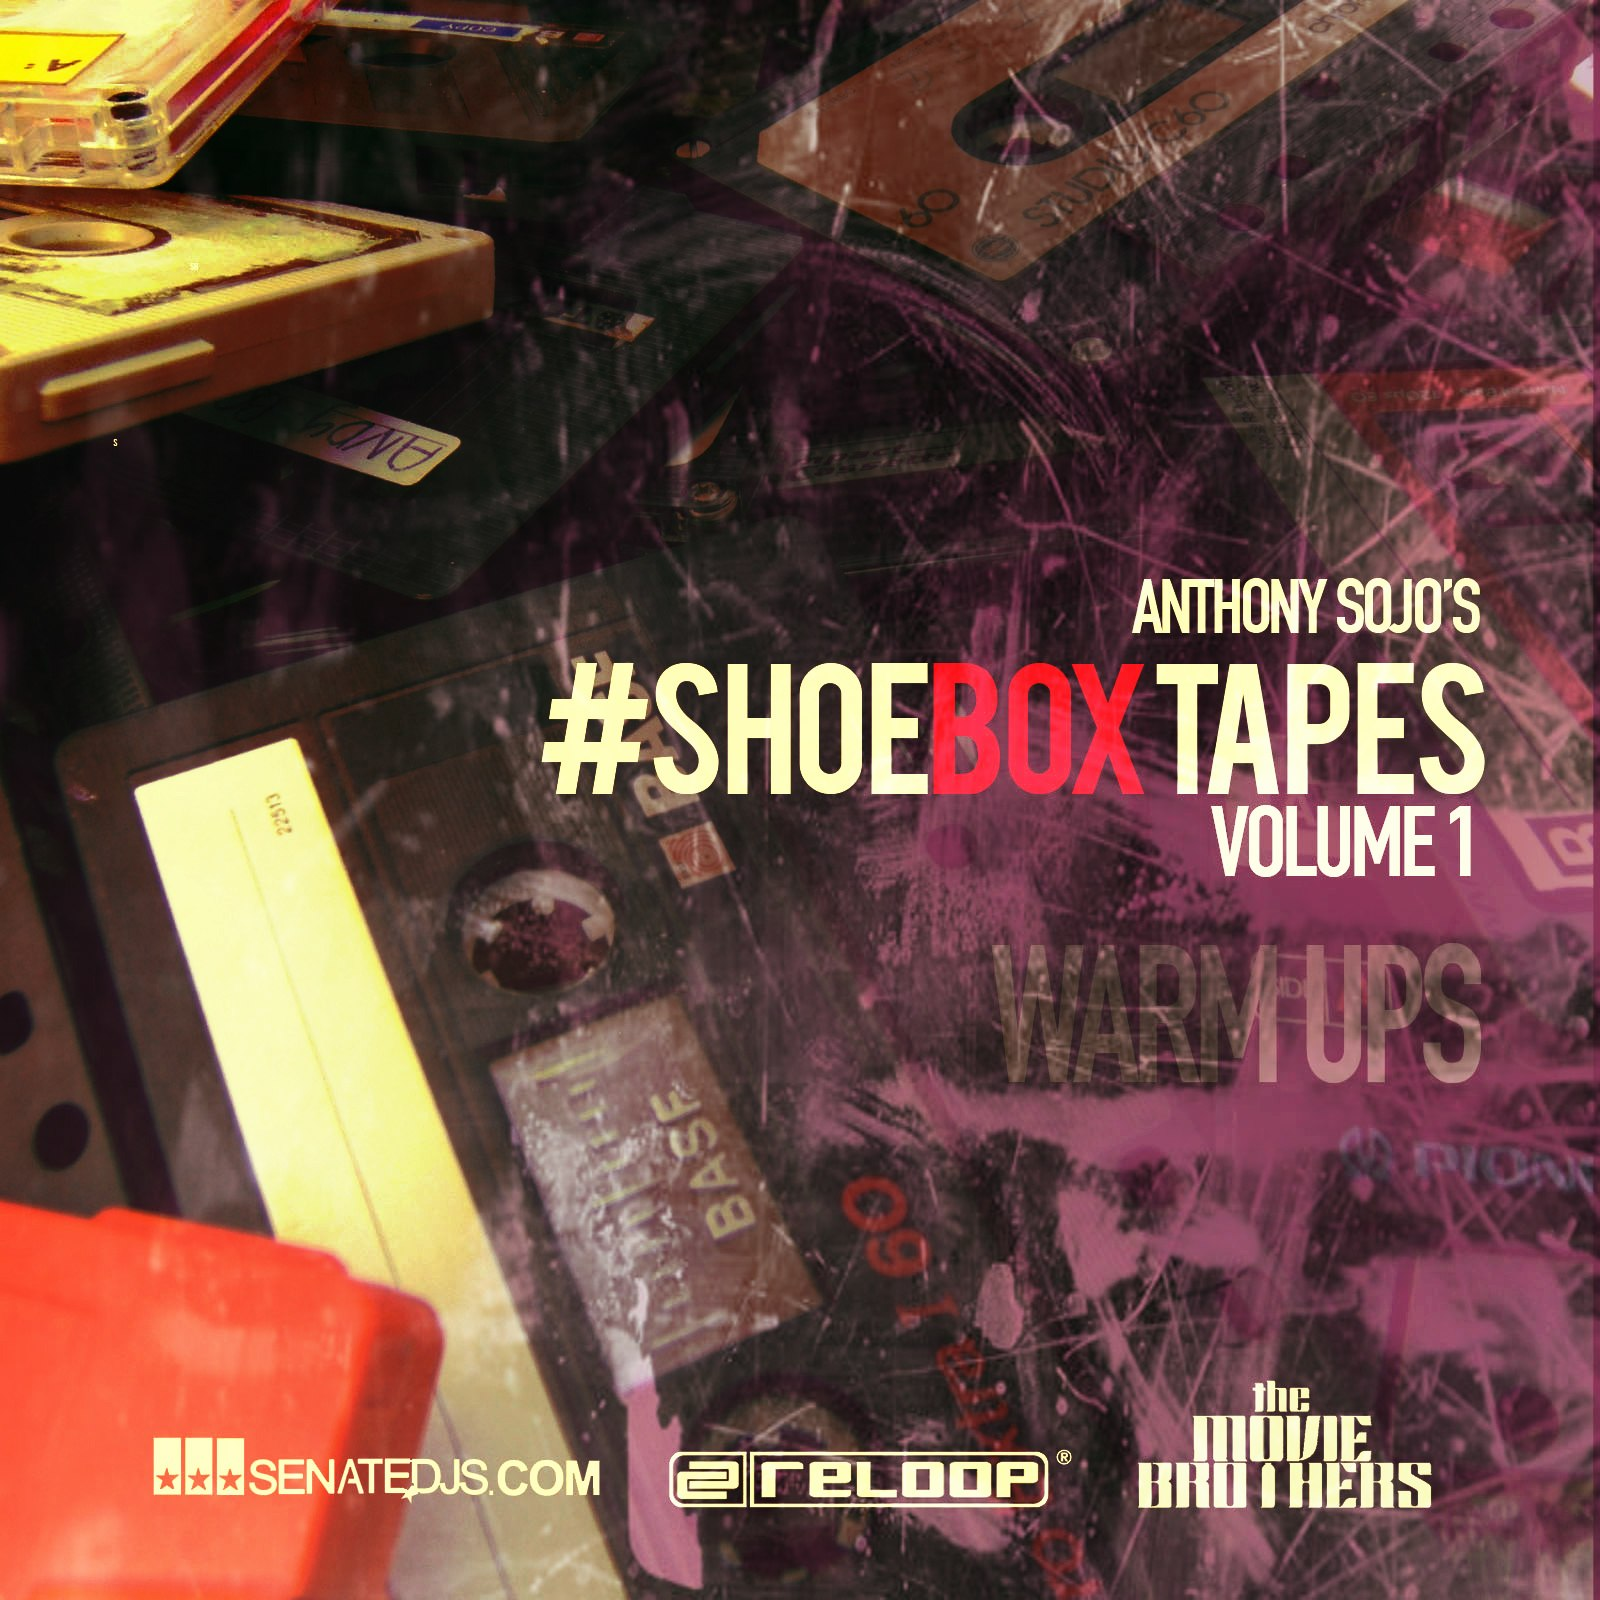 #ShoeBoxTapes- Vol 1 - Warm Ups | Anthony Sojo [Collection of Retro hits 80s ,90s, 2k]